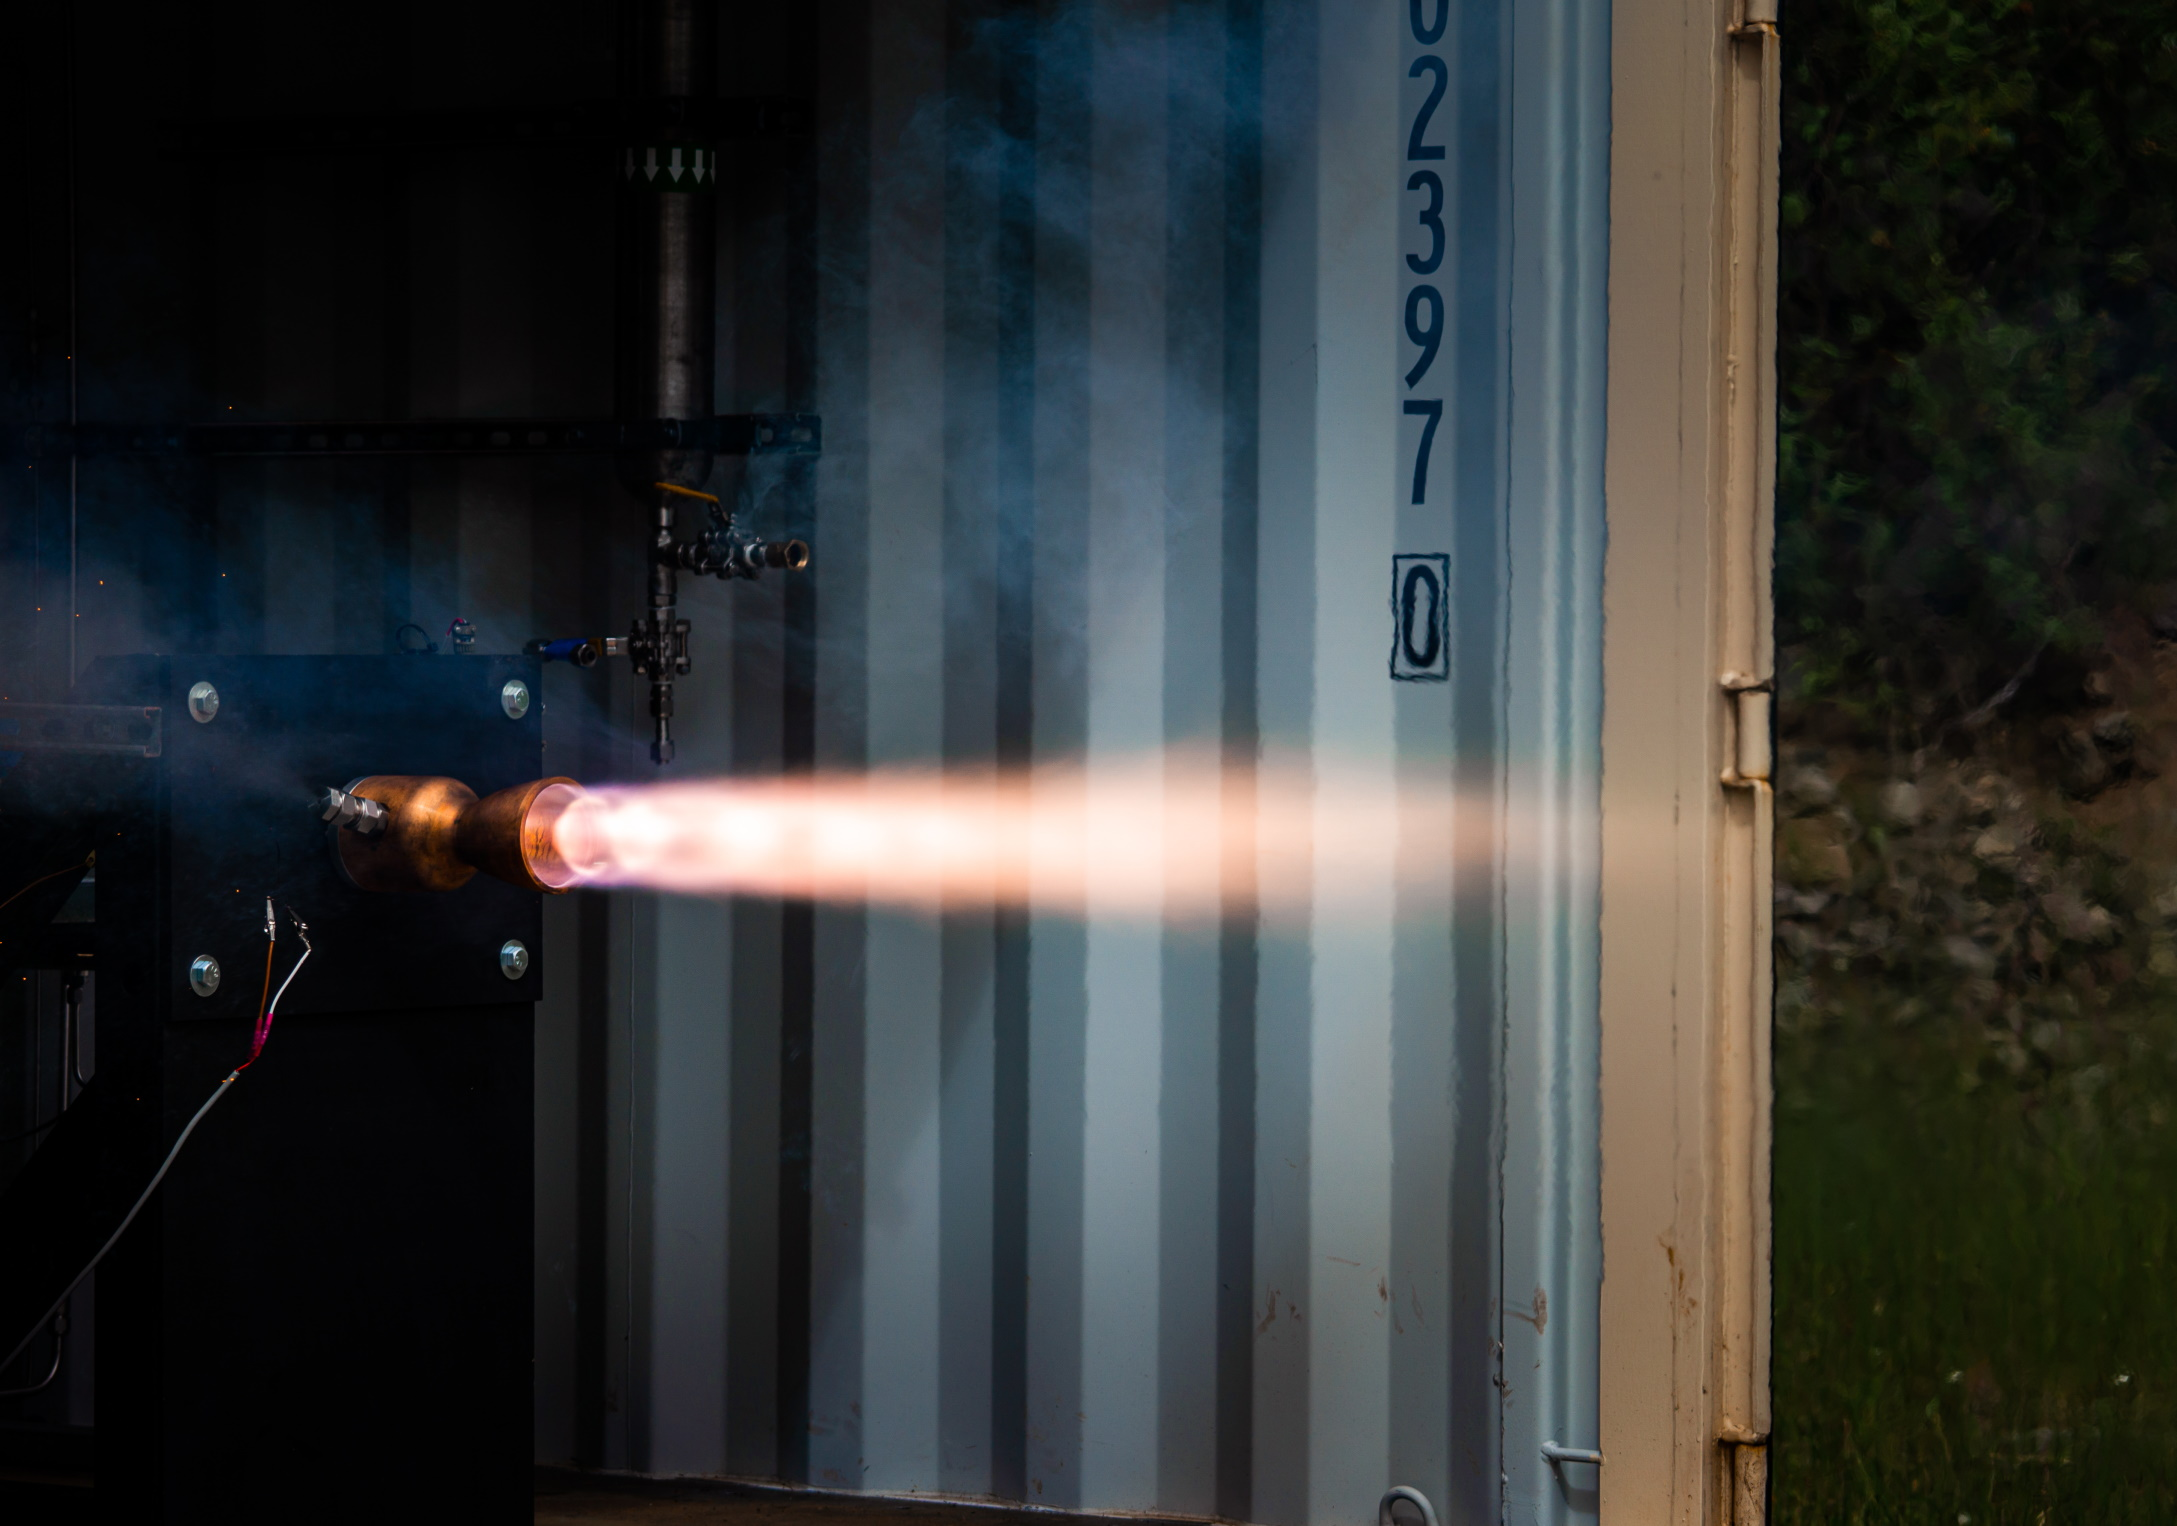 A missile makes a test fire in an industrial setting.